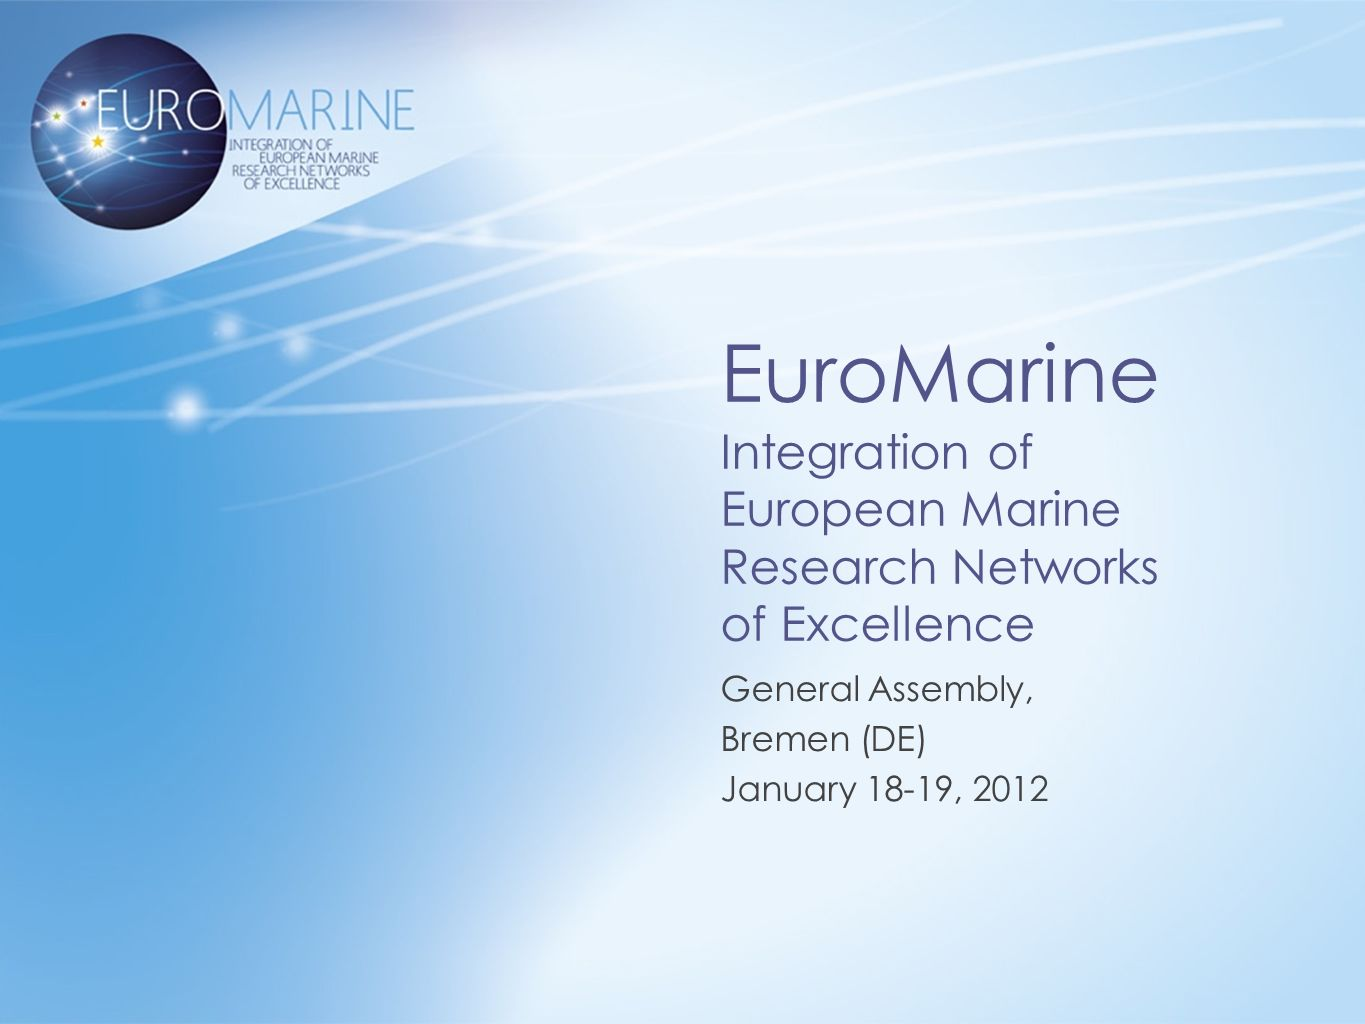 EuroMarine Integration of European Marine Research Networks of Excellence General Assembly, Bremen (DE) January 18-19, 2012